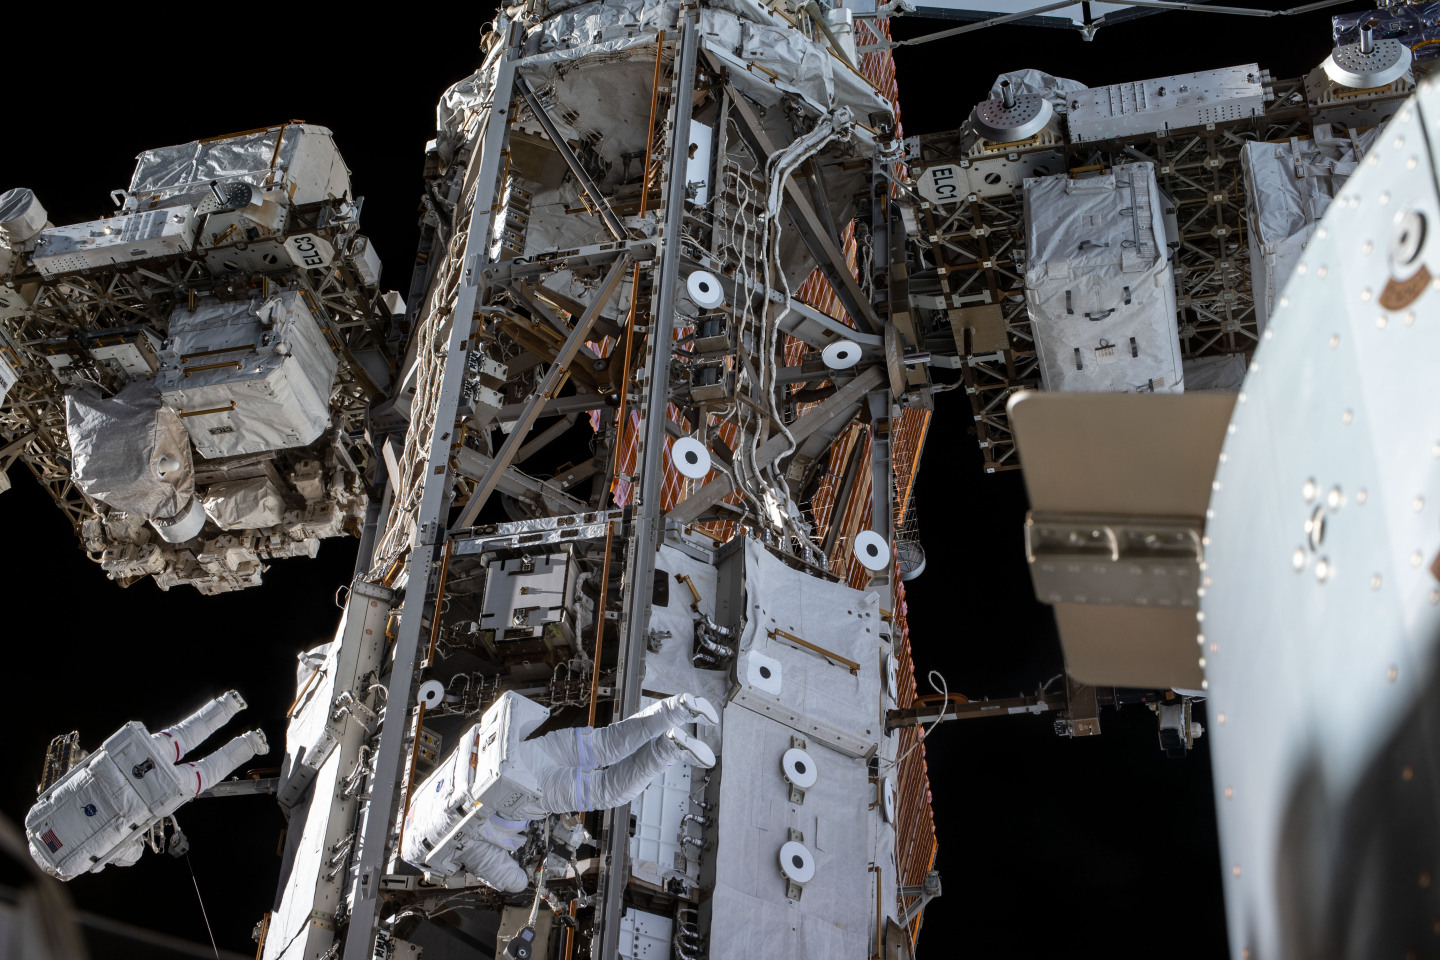 Spacewalk to repair the AMS detector on the International space station